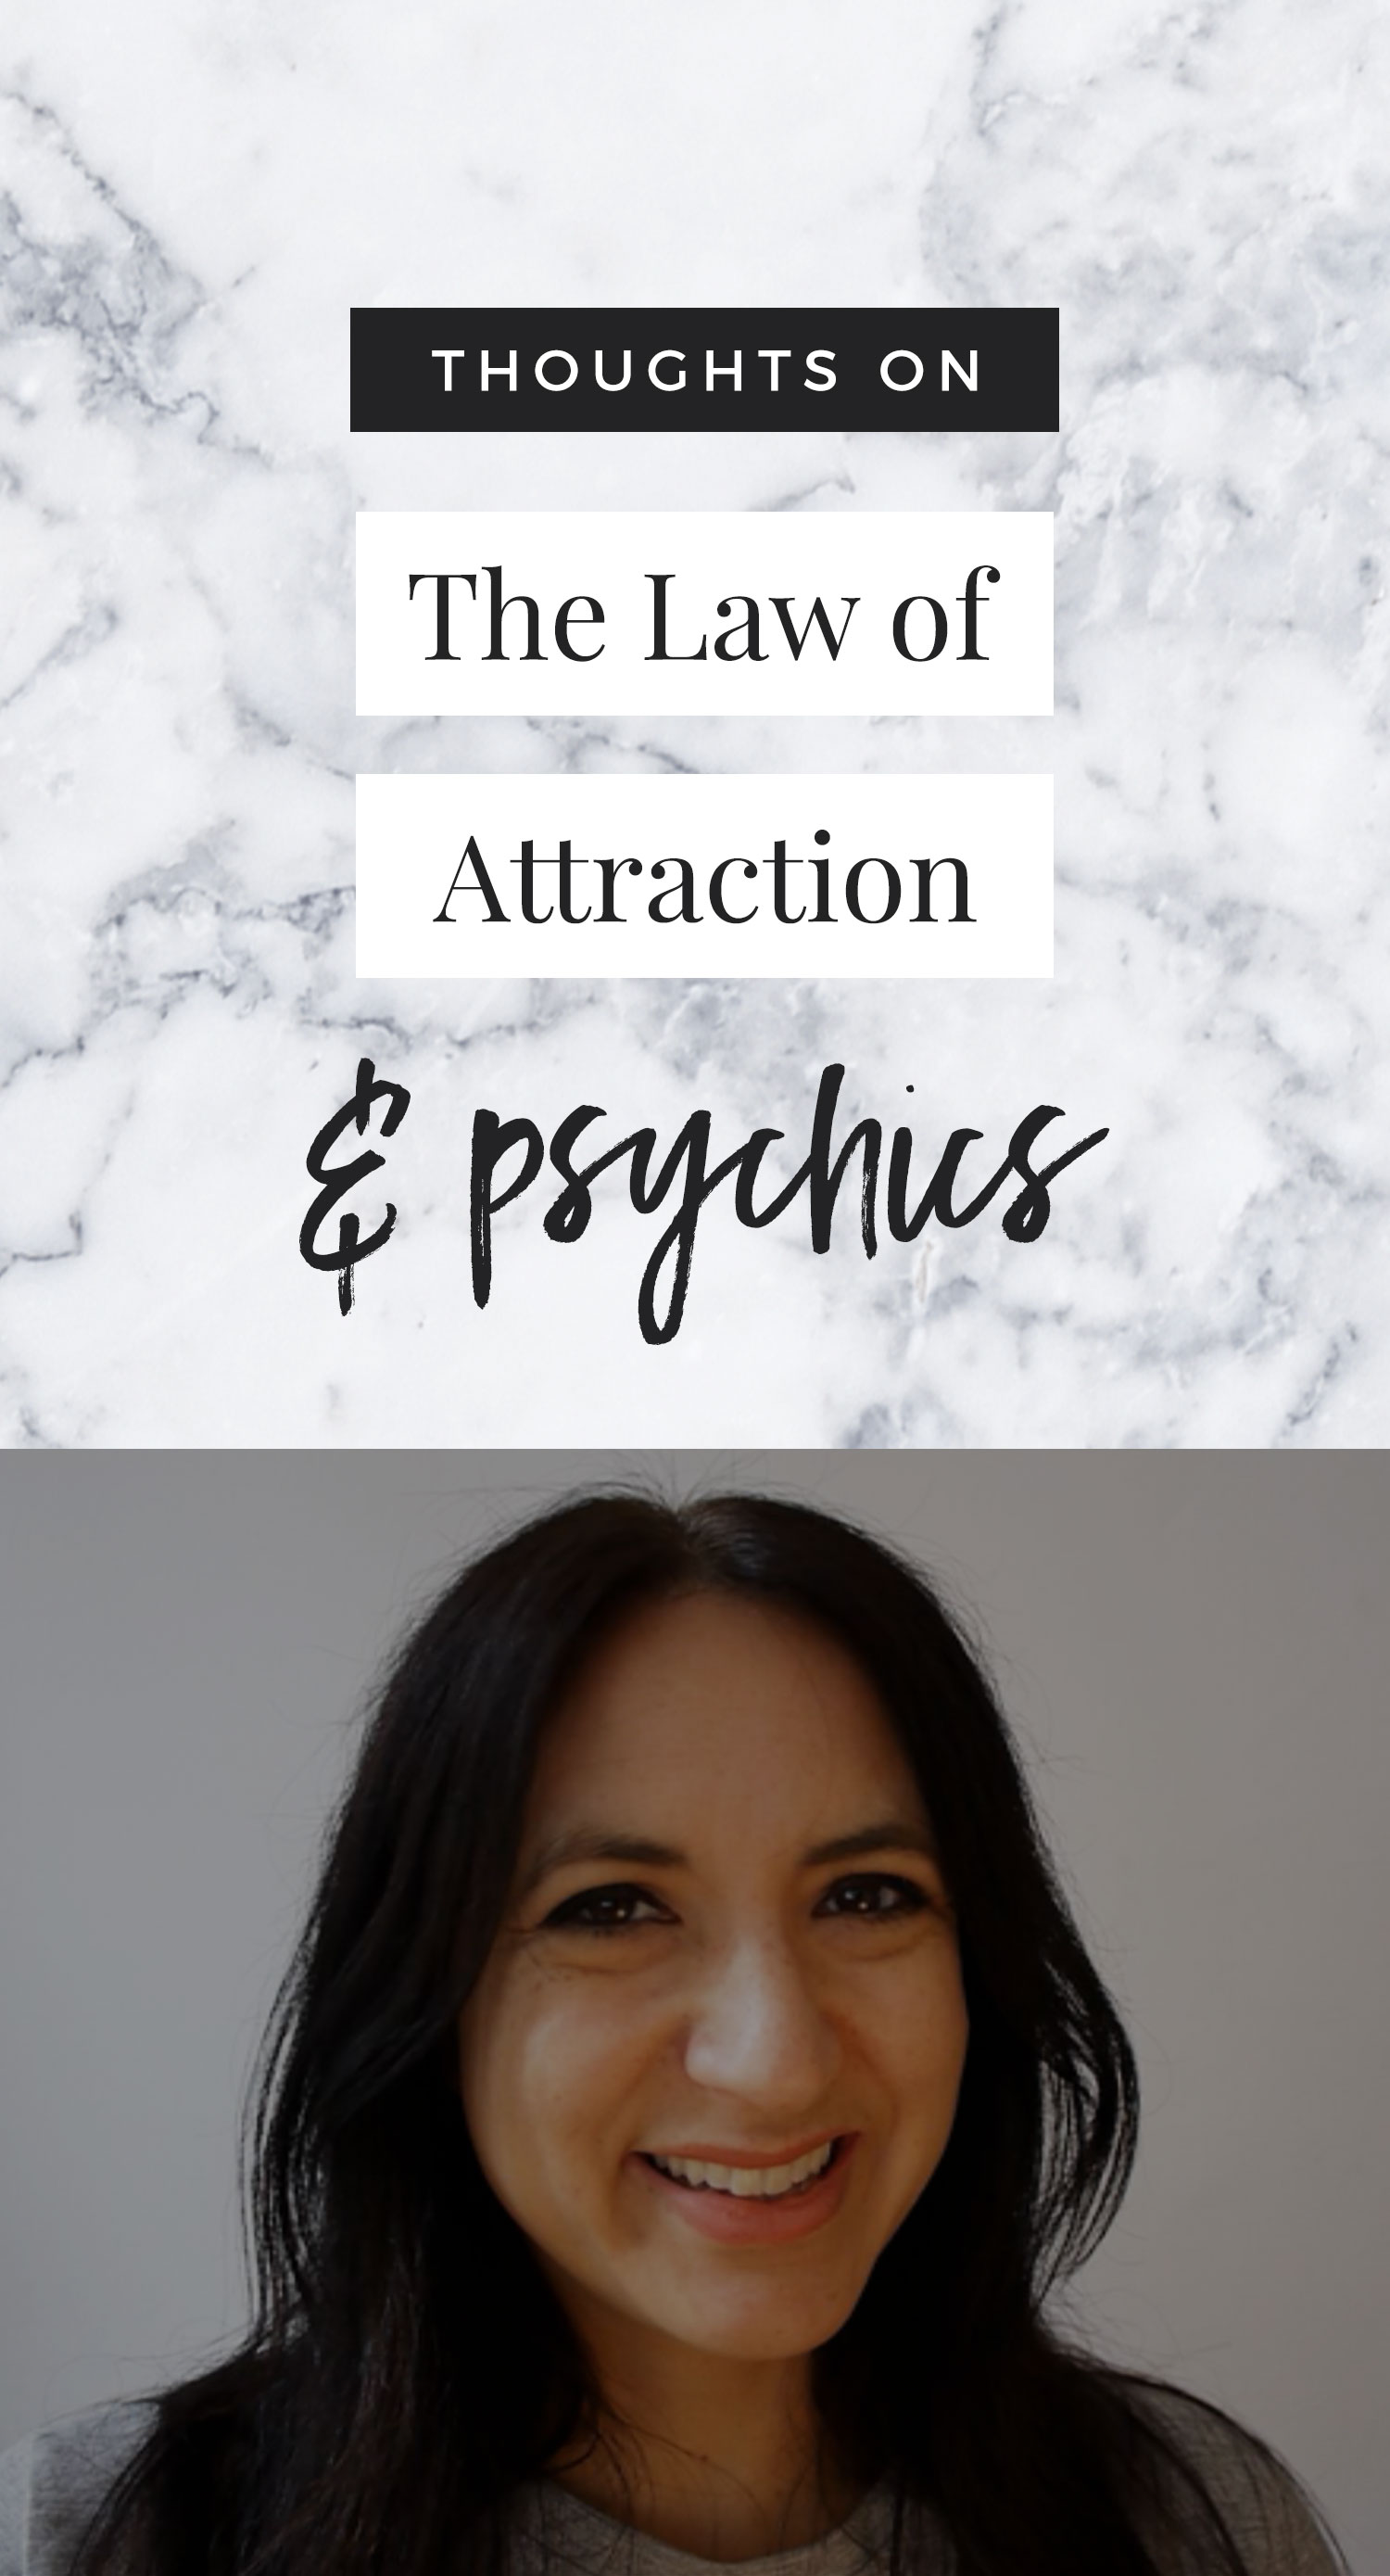 The Law of Attraction & Psychics